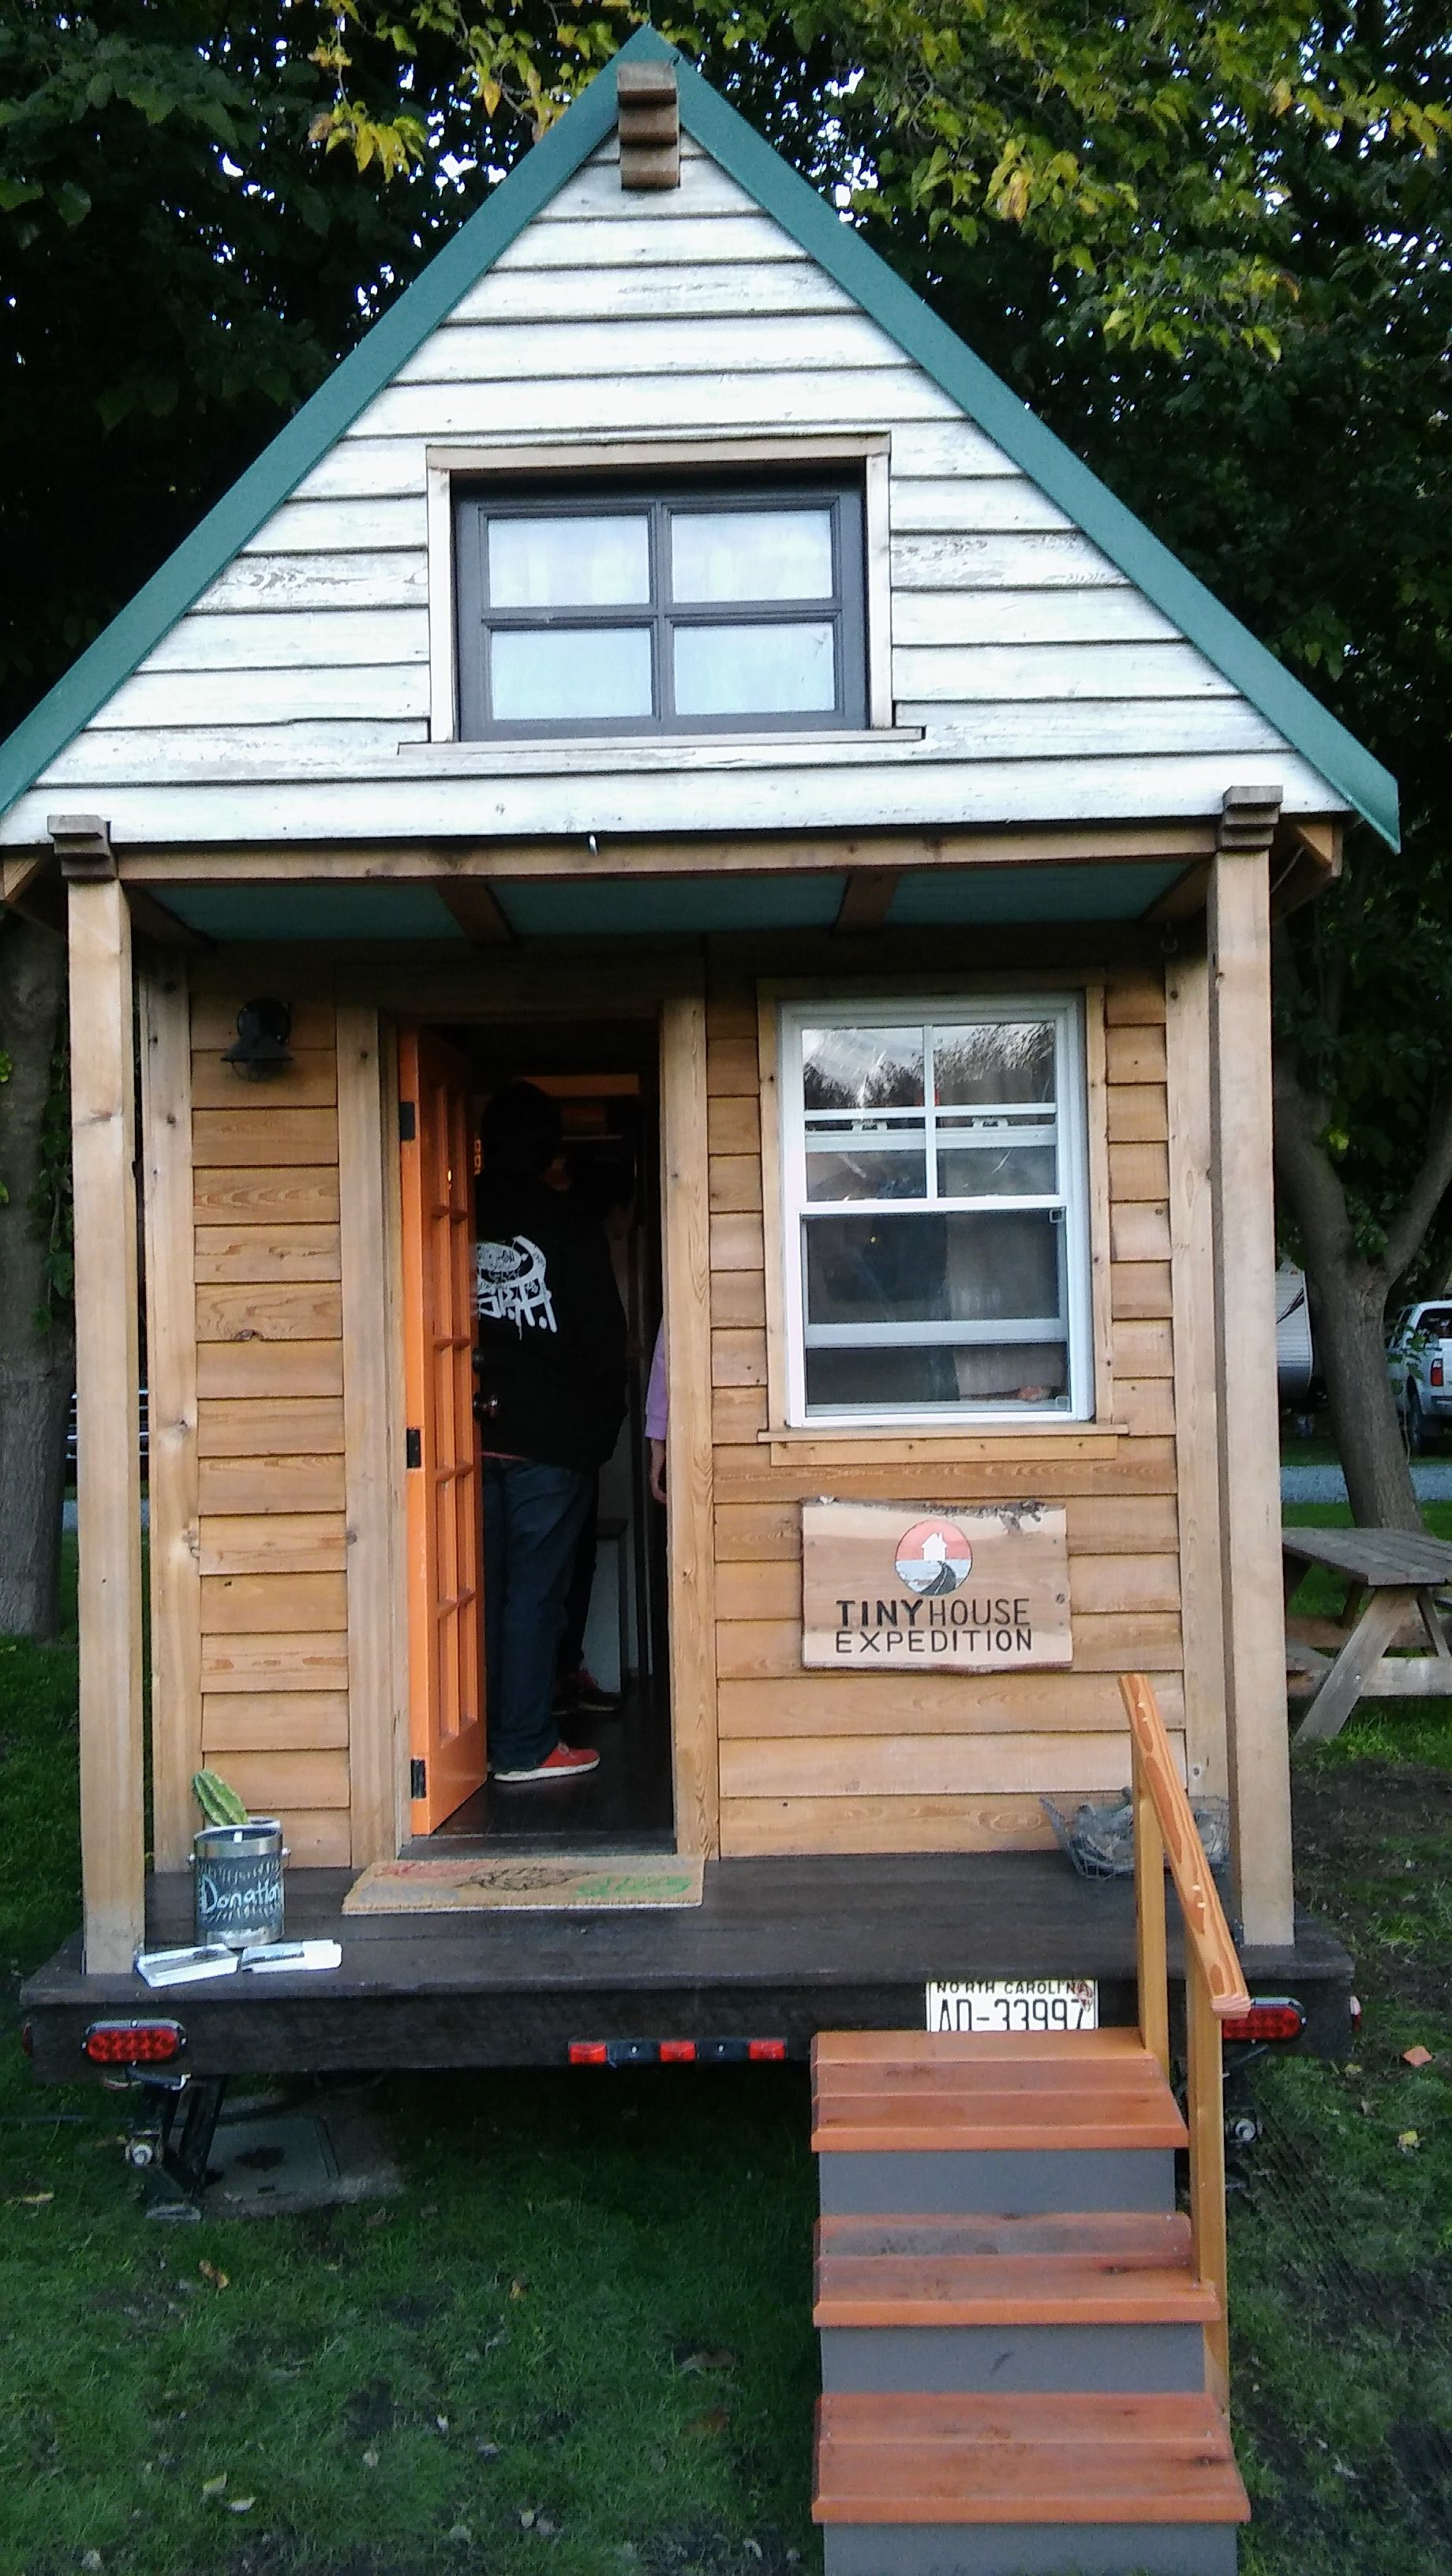 East Bay Tiny House Enthusiasts